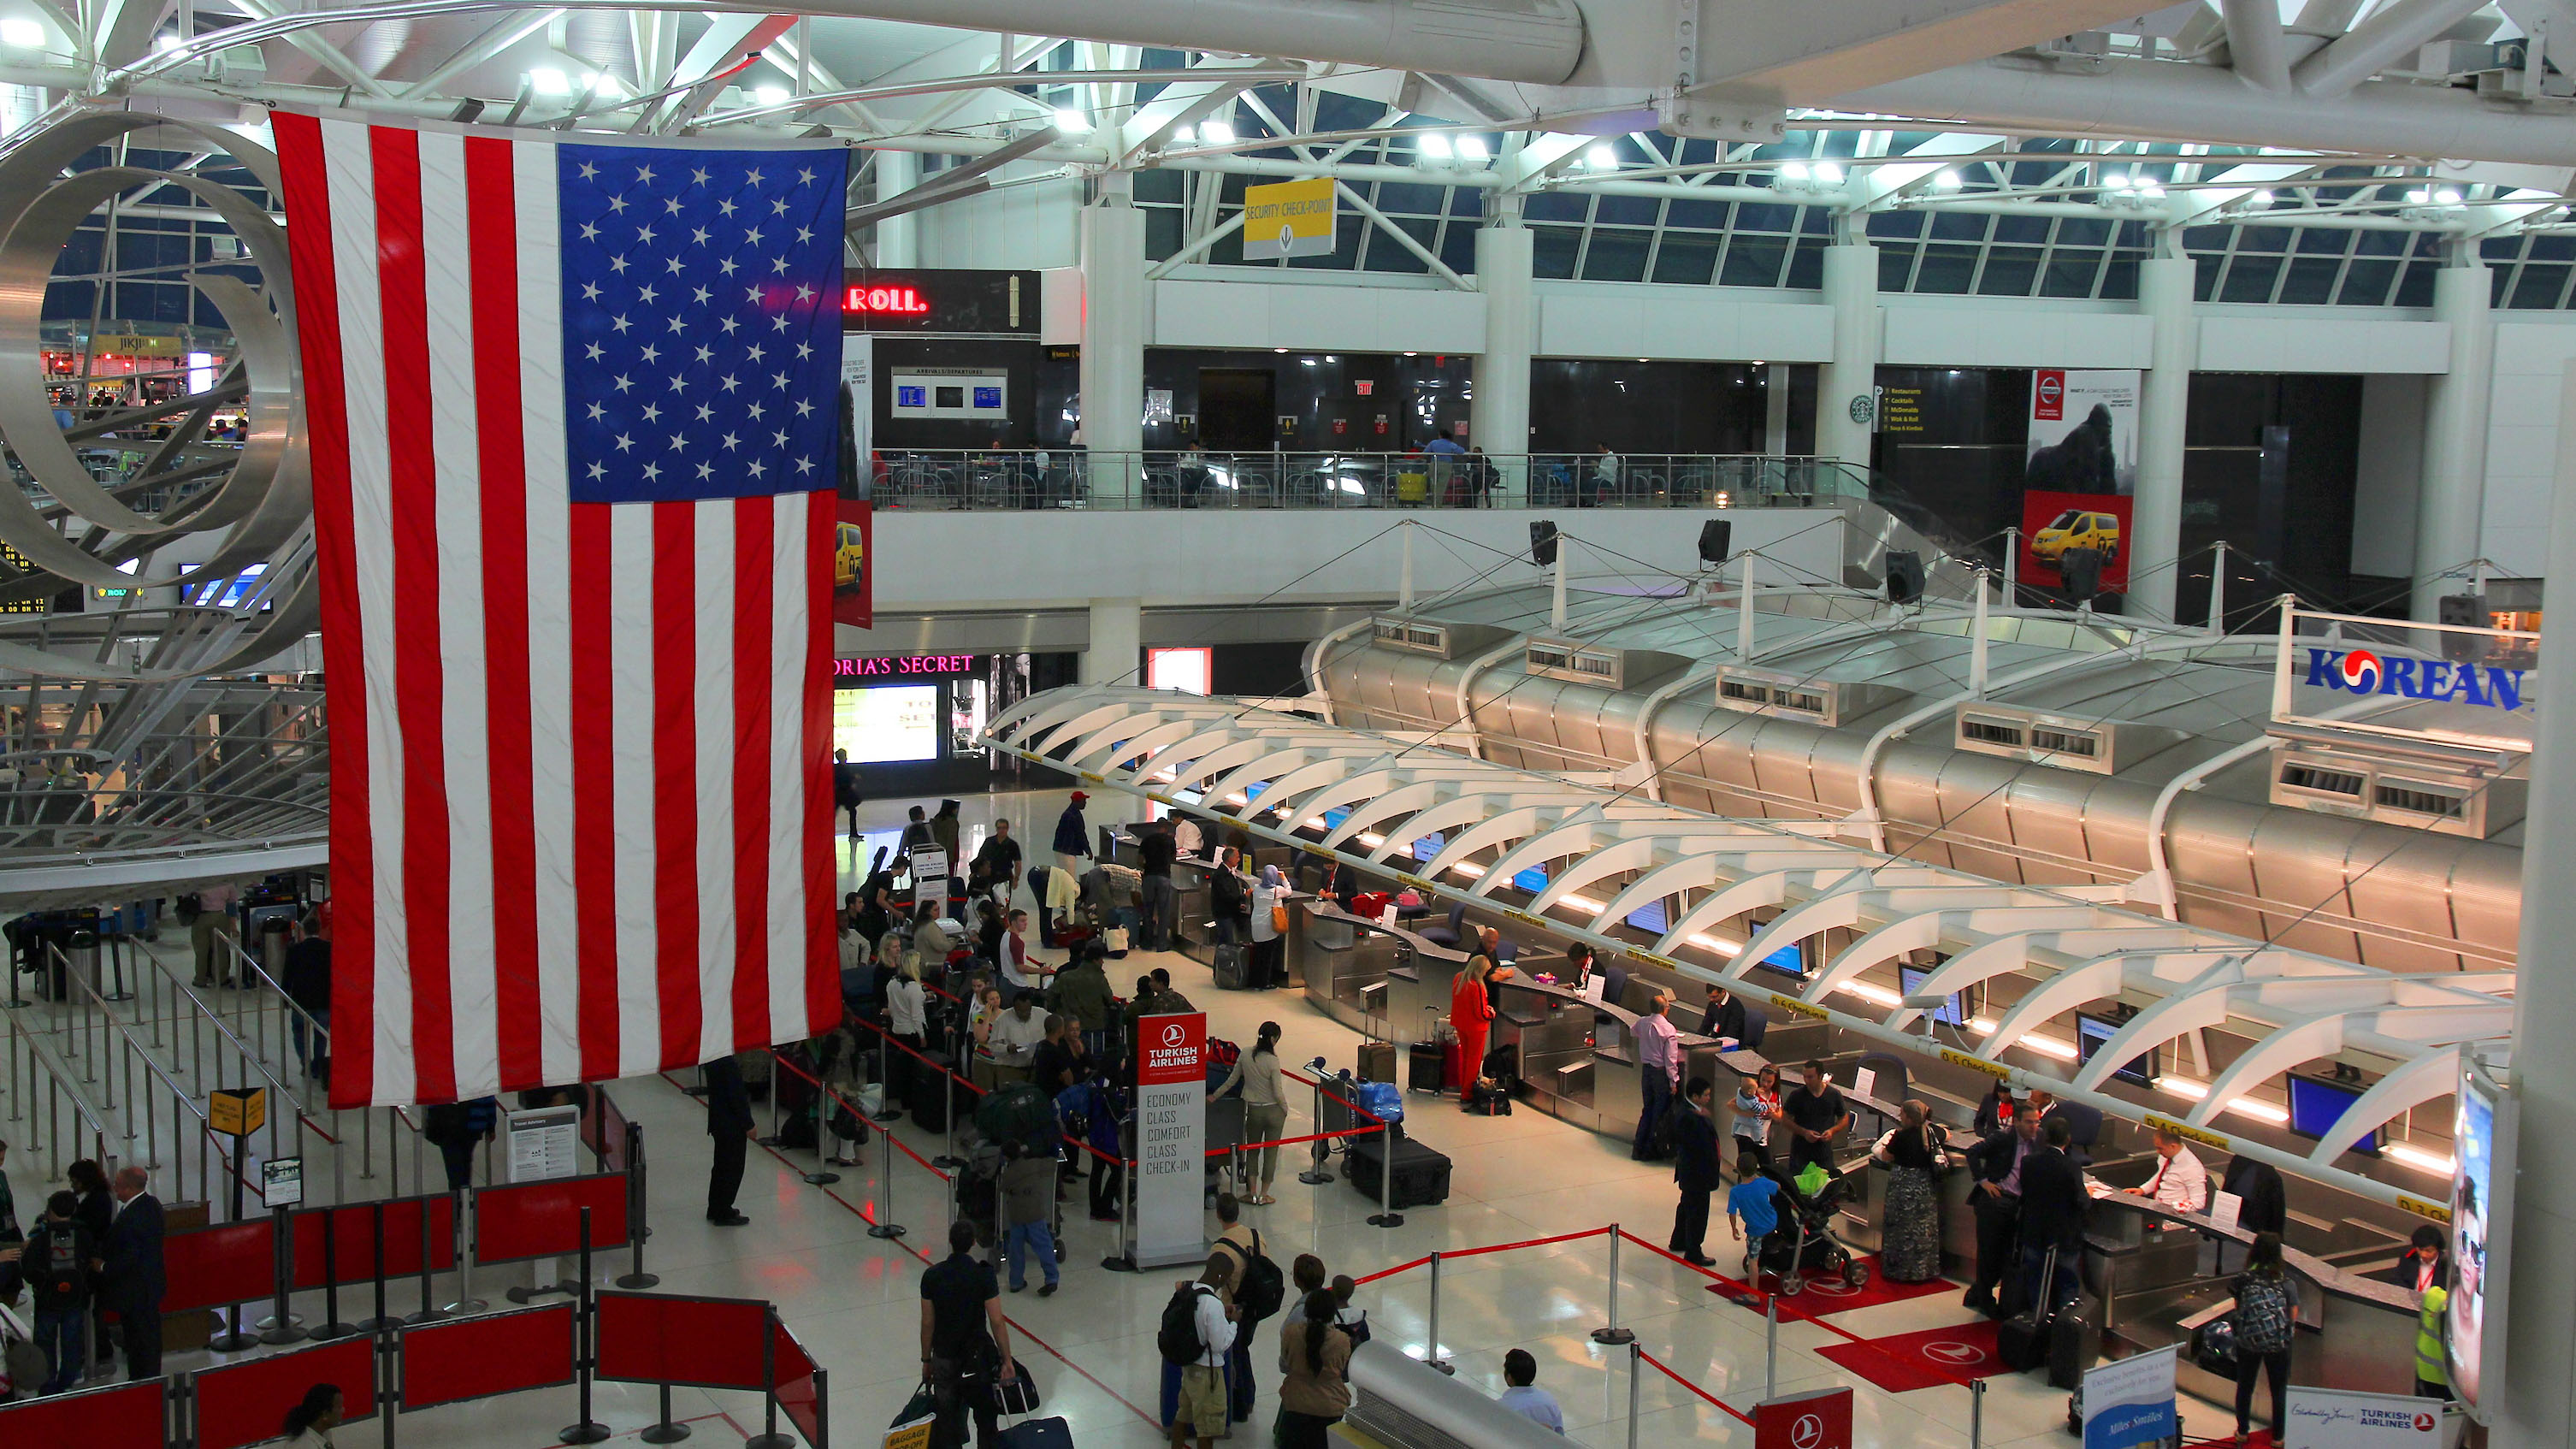 Traveling without quarantine? It may soon be possible with new airline industry app - Fox News